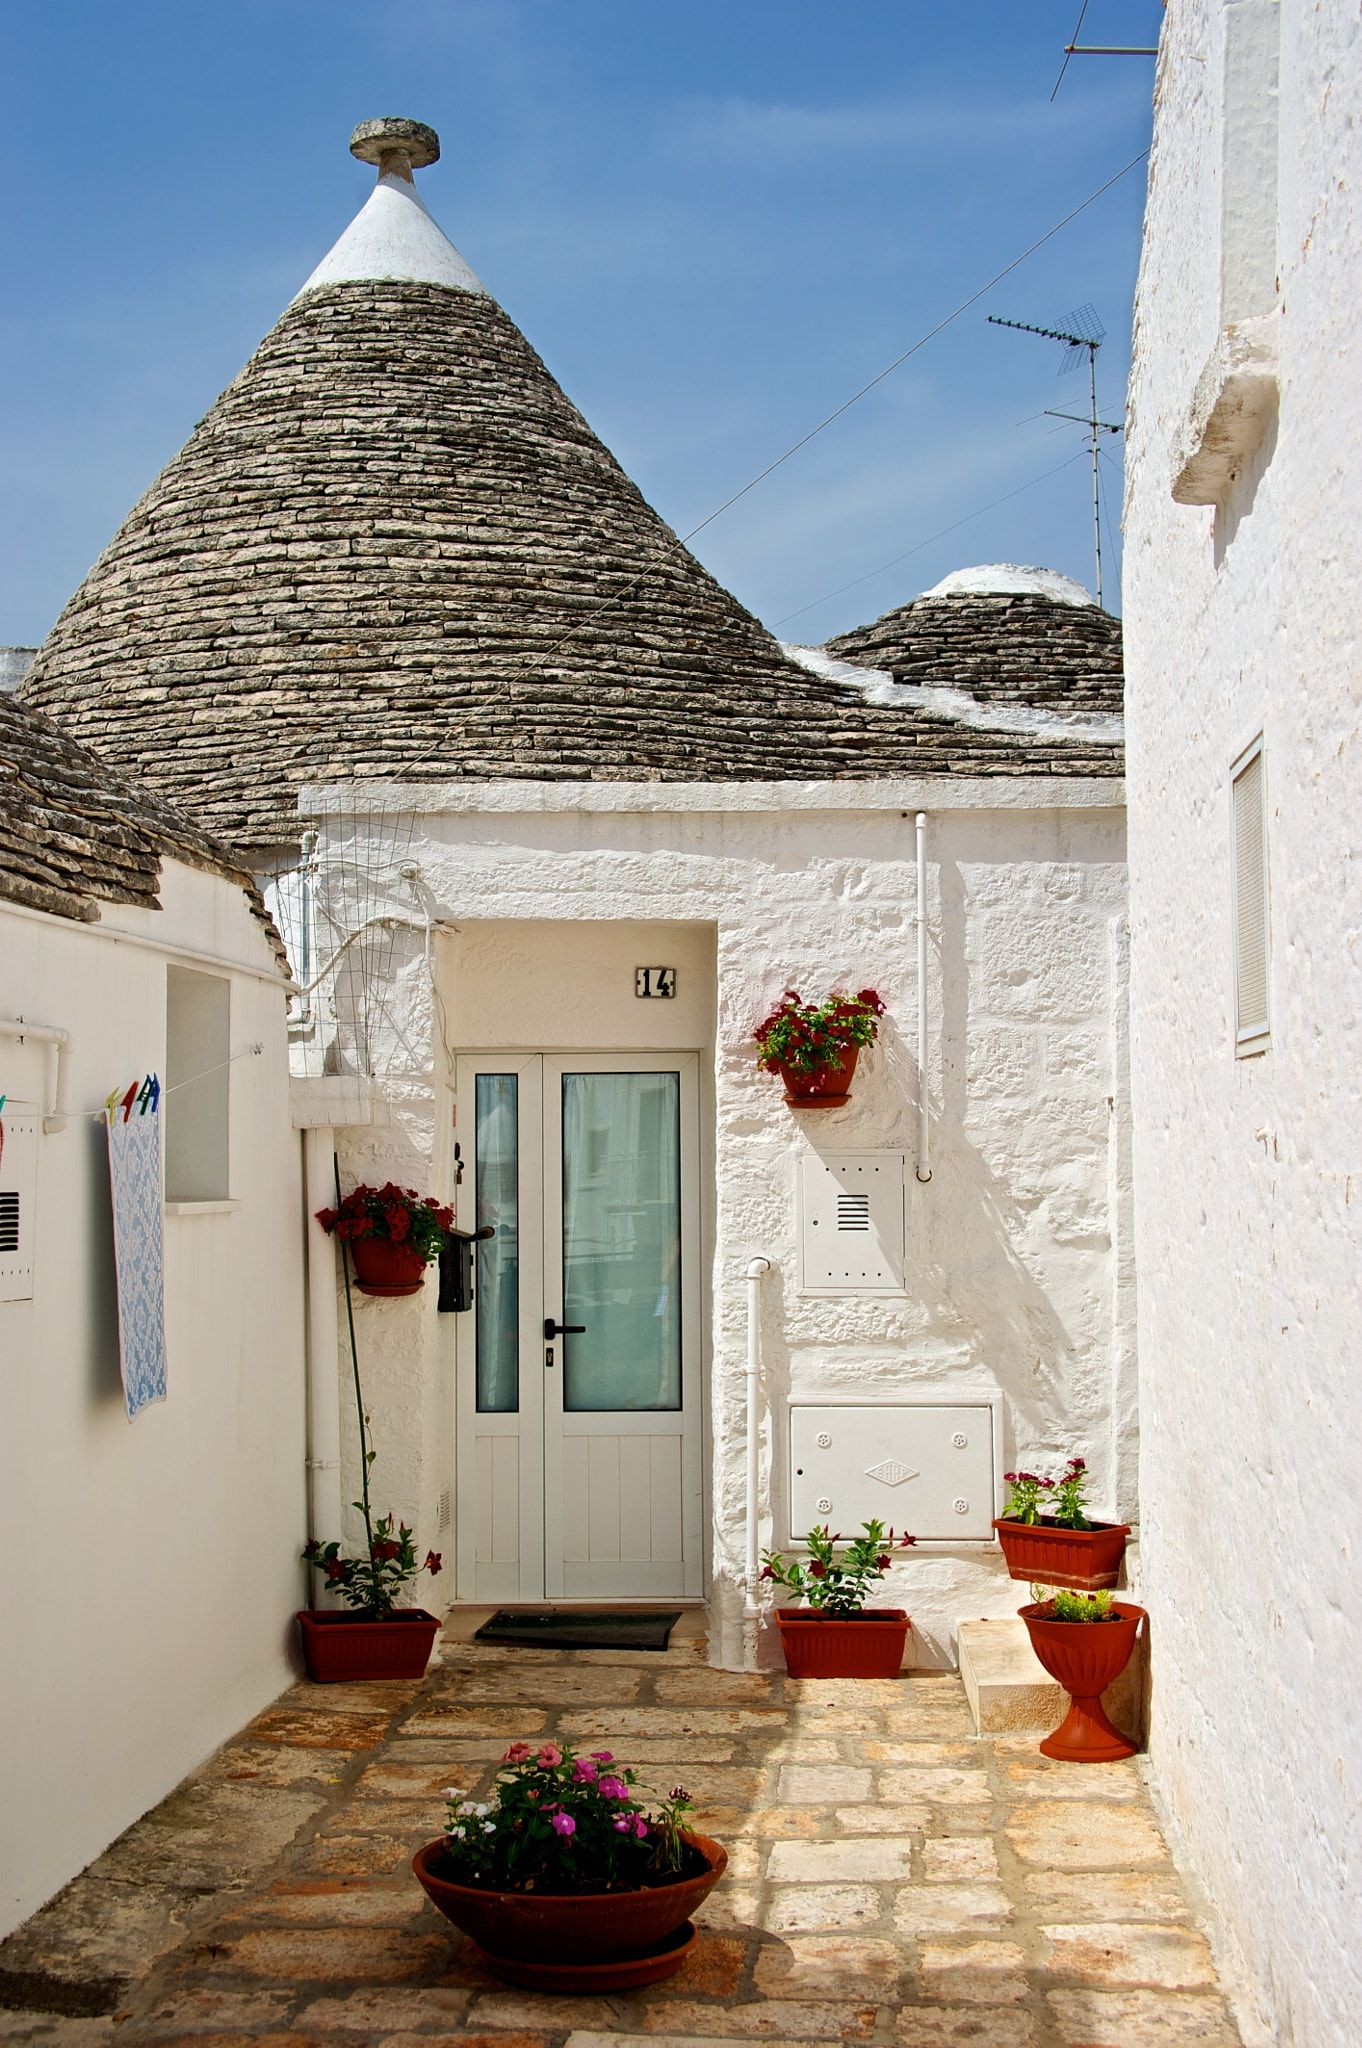 alberobello trullo a trullo plural trulli is a traditional